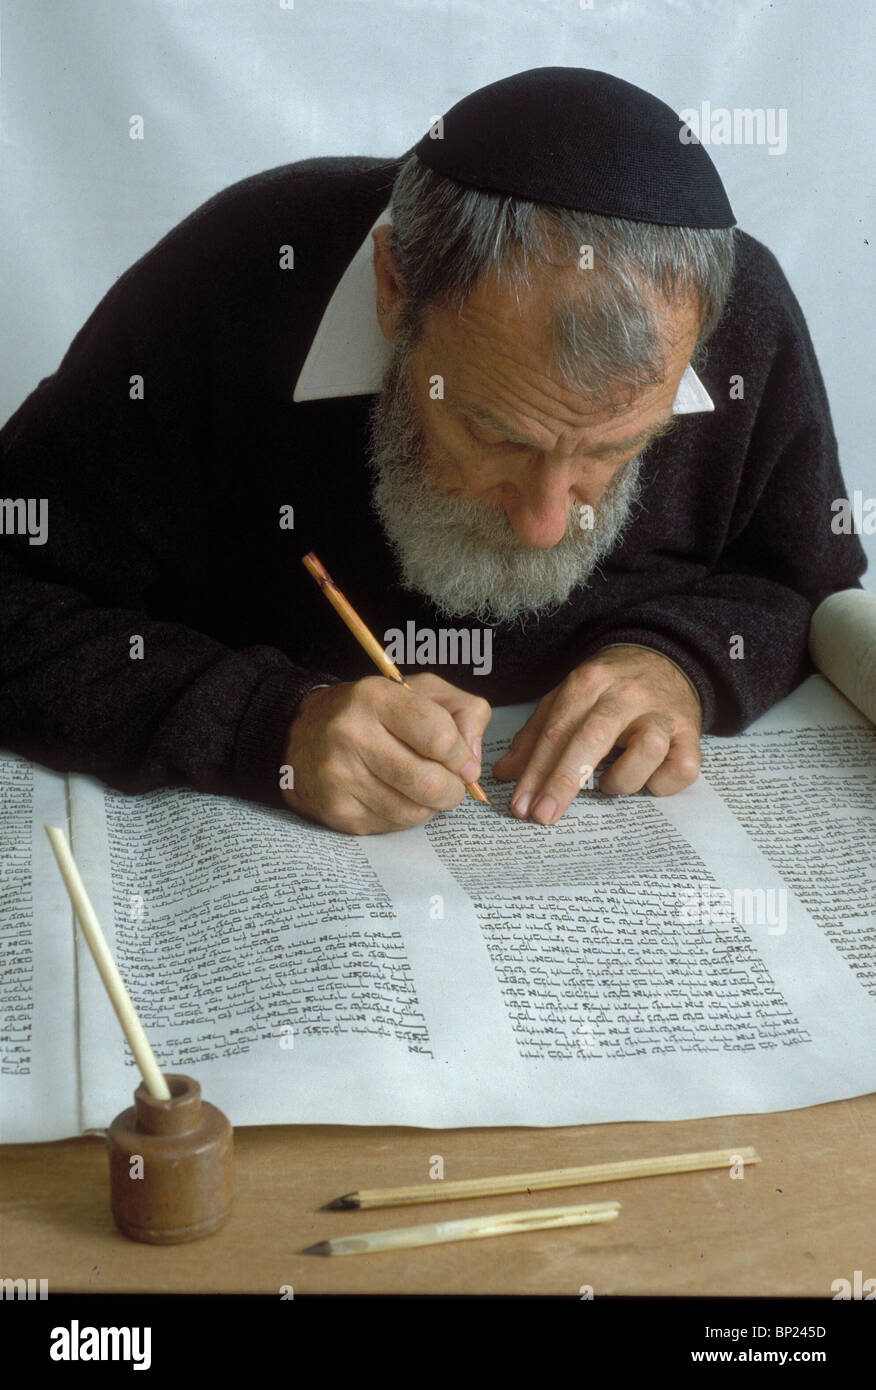 TORAH SCROLL IS BEING WRITTEN BY HAND ON PARCHMENT BY A PROFFESIONAL SCRIBE USING TRADITIONAL WRITING TOOLS REED - Stock Image